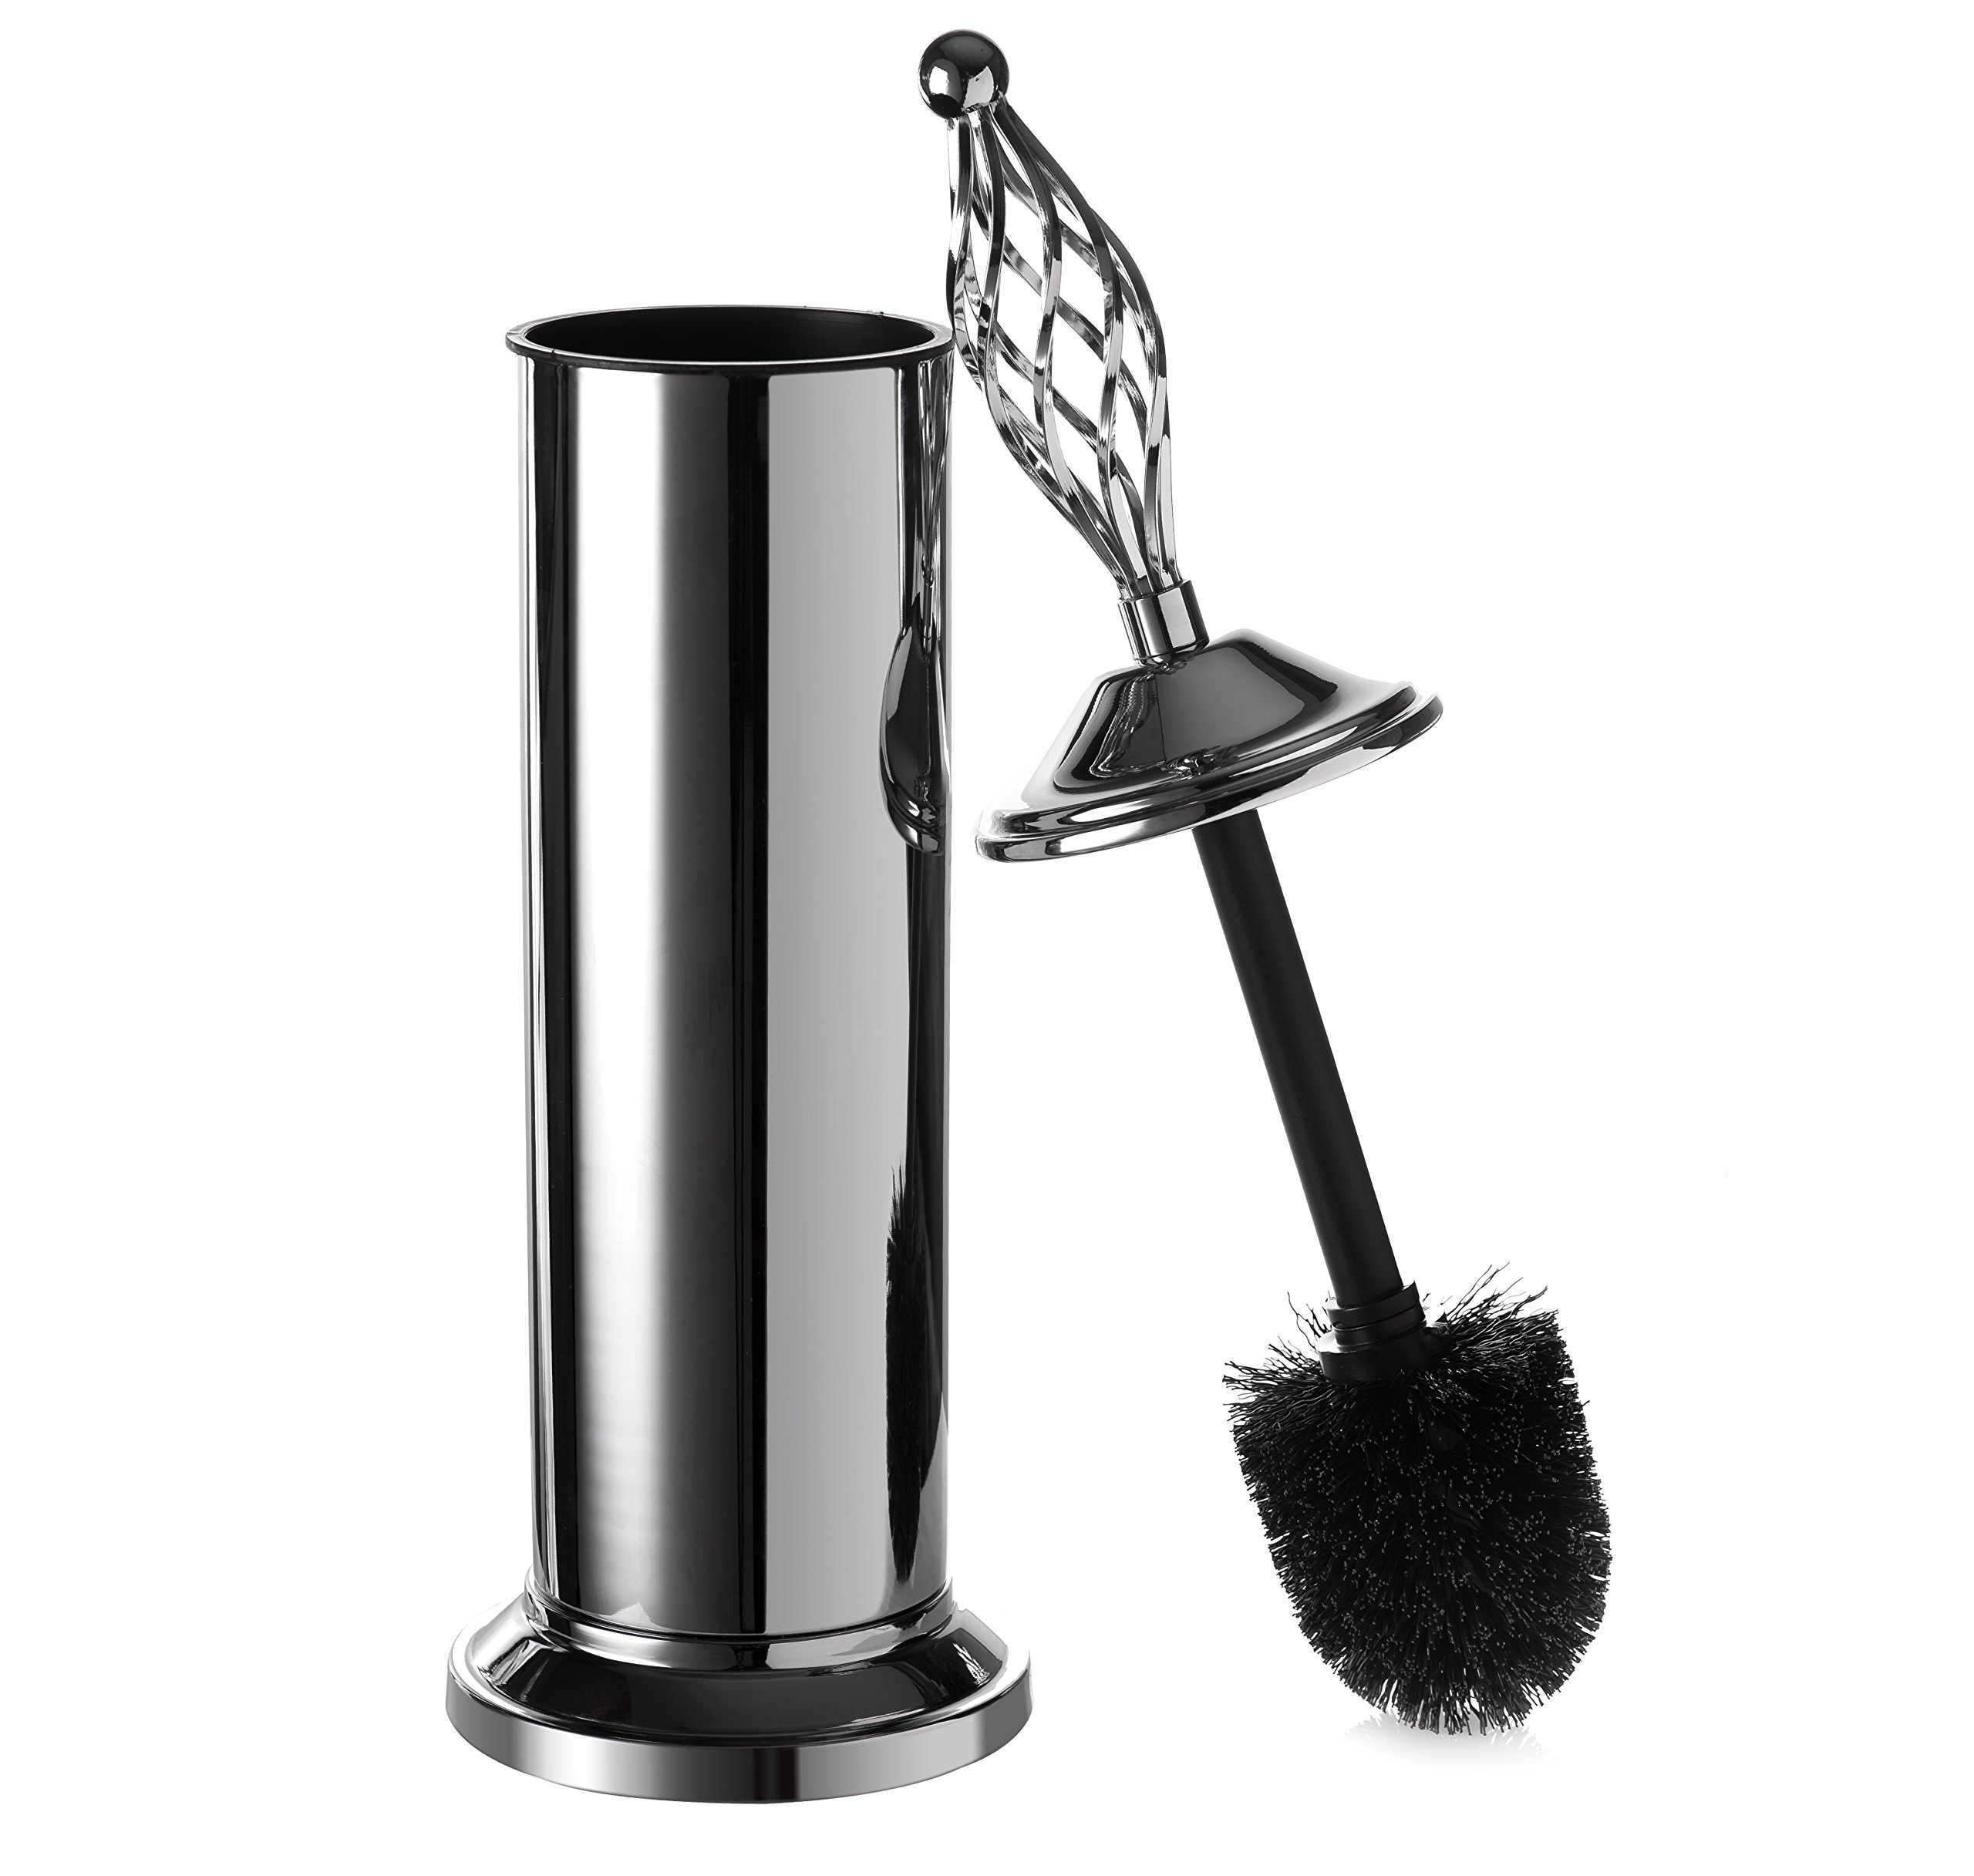 AMG and Enchante Accessories, Twisted Cage Toilet Brush and Holder, TB100004 CHR, Chrome